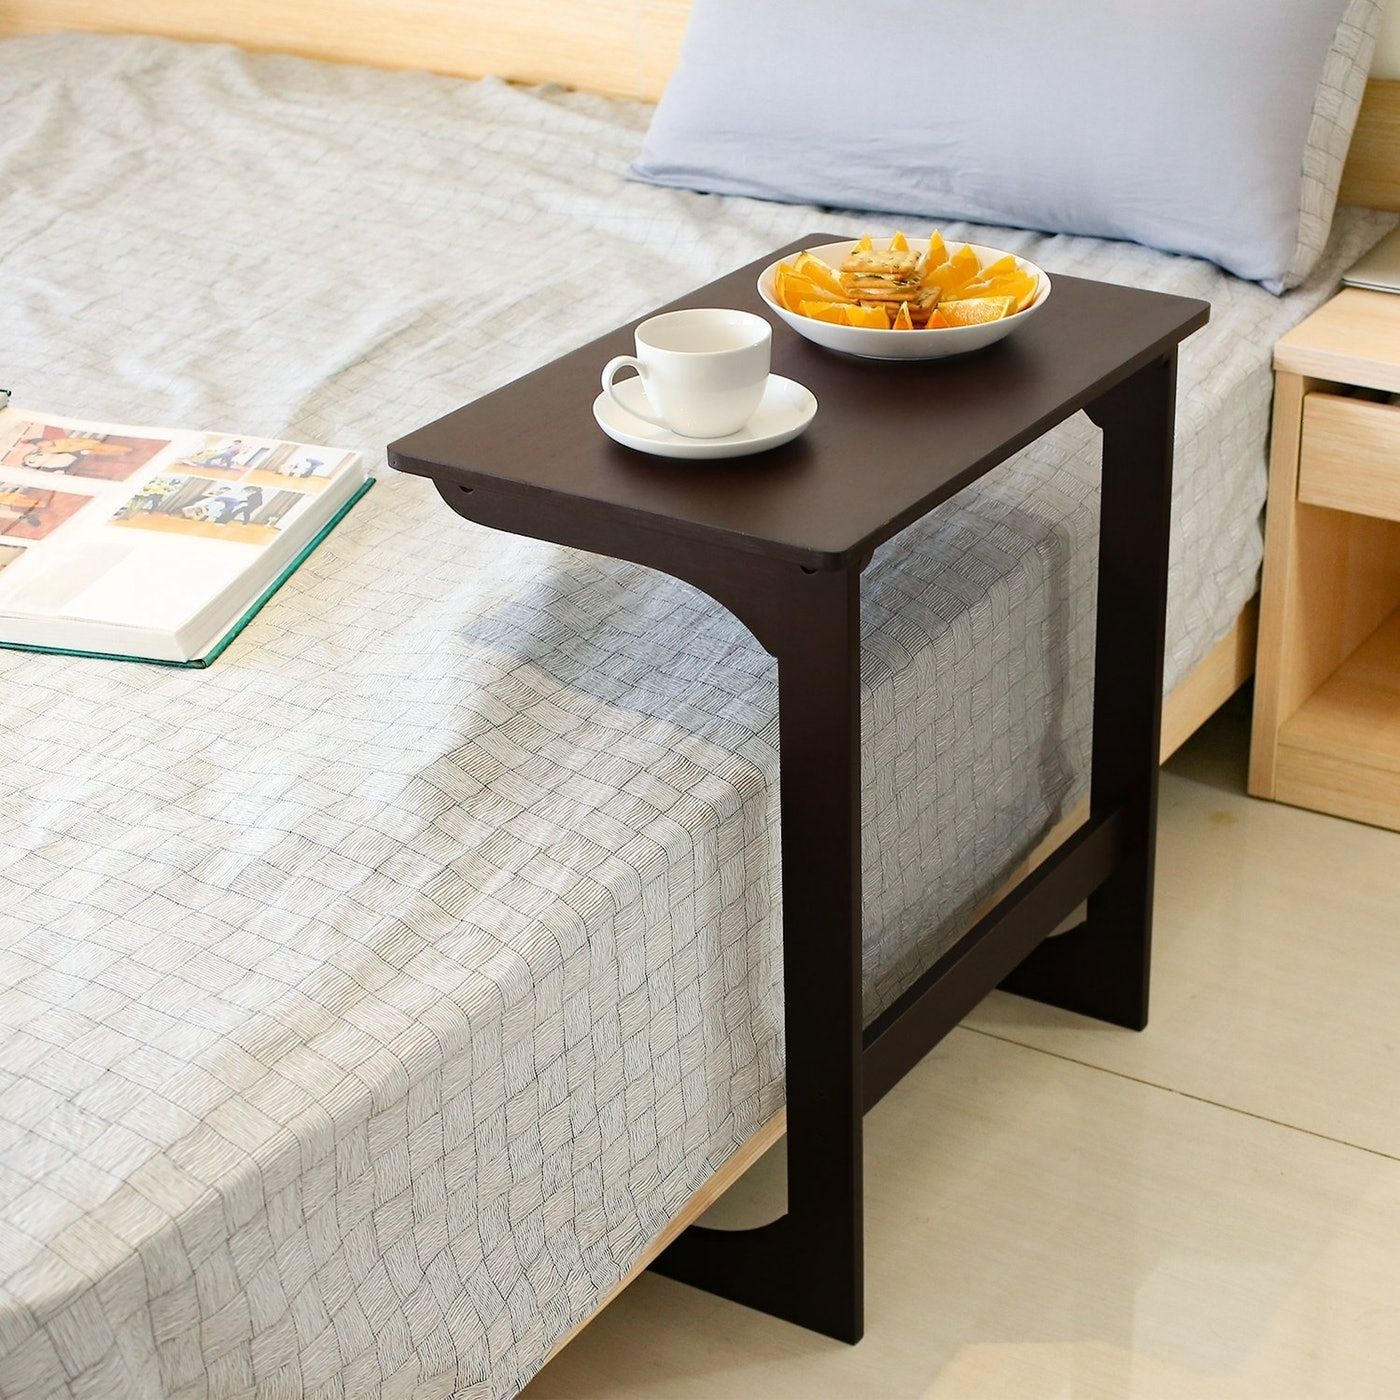 These Super Useful Trays Take Breakfast In Bed To The Next Level